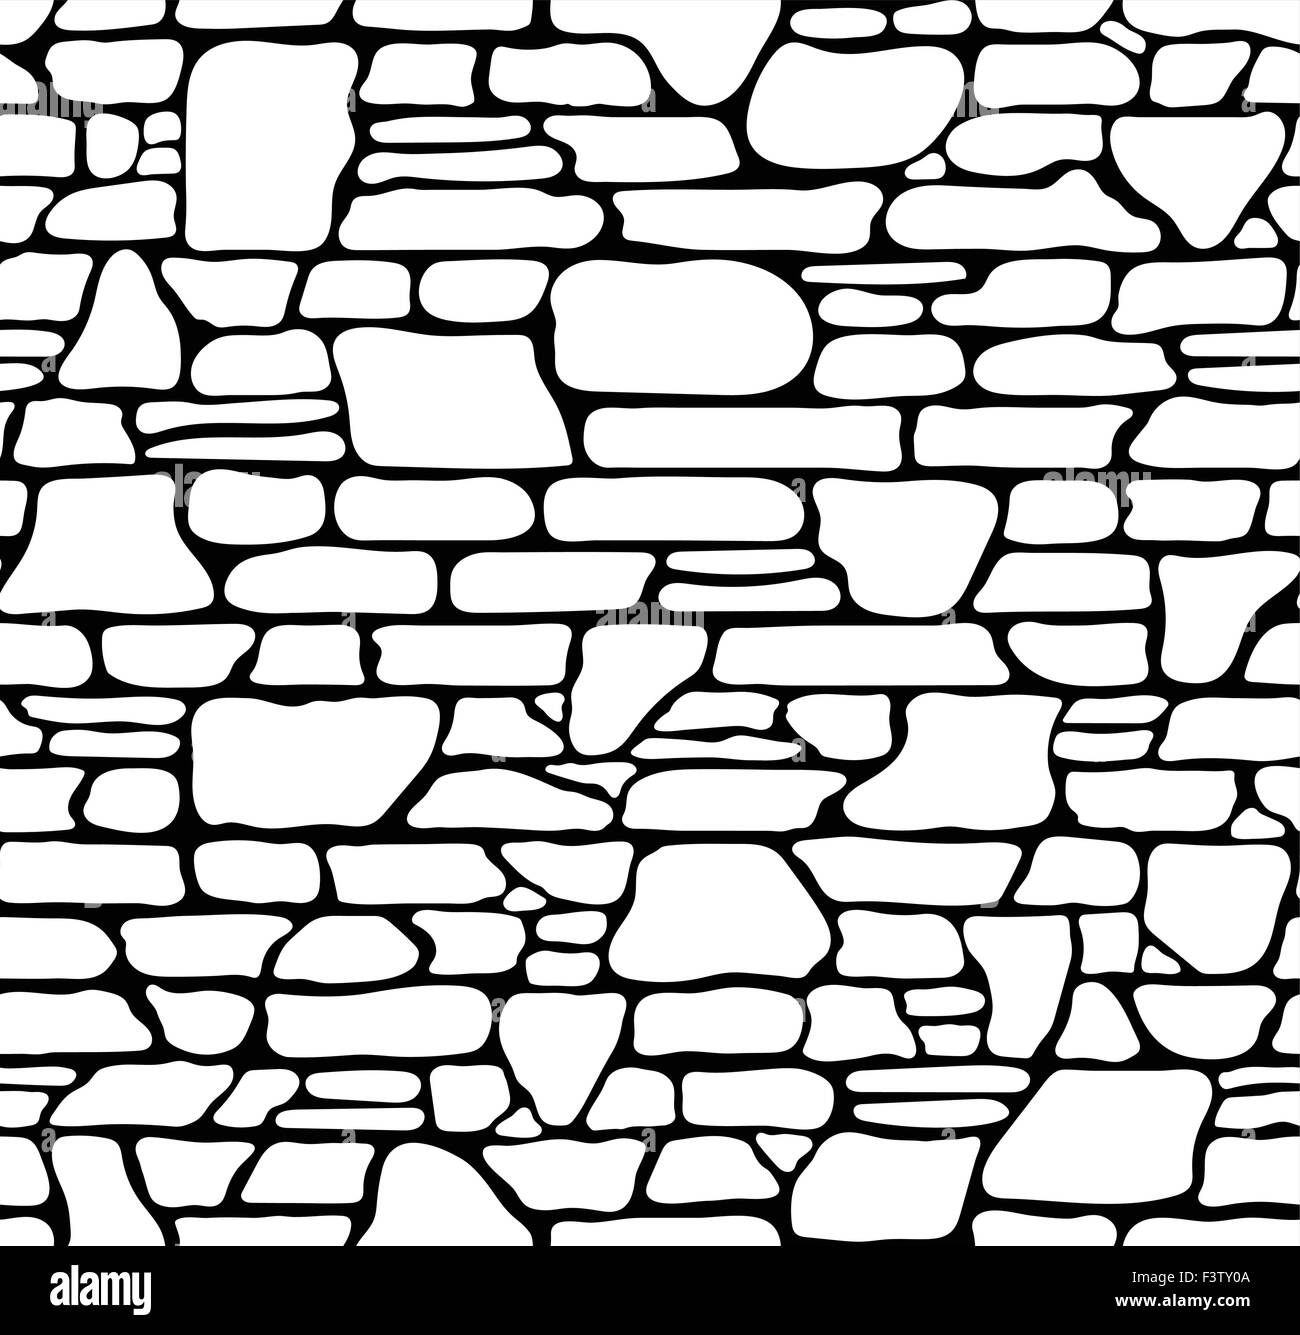 Seamless Grunge Stone Brick Wall Texture Vector Illustration